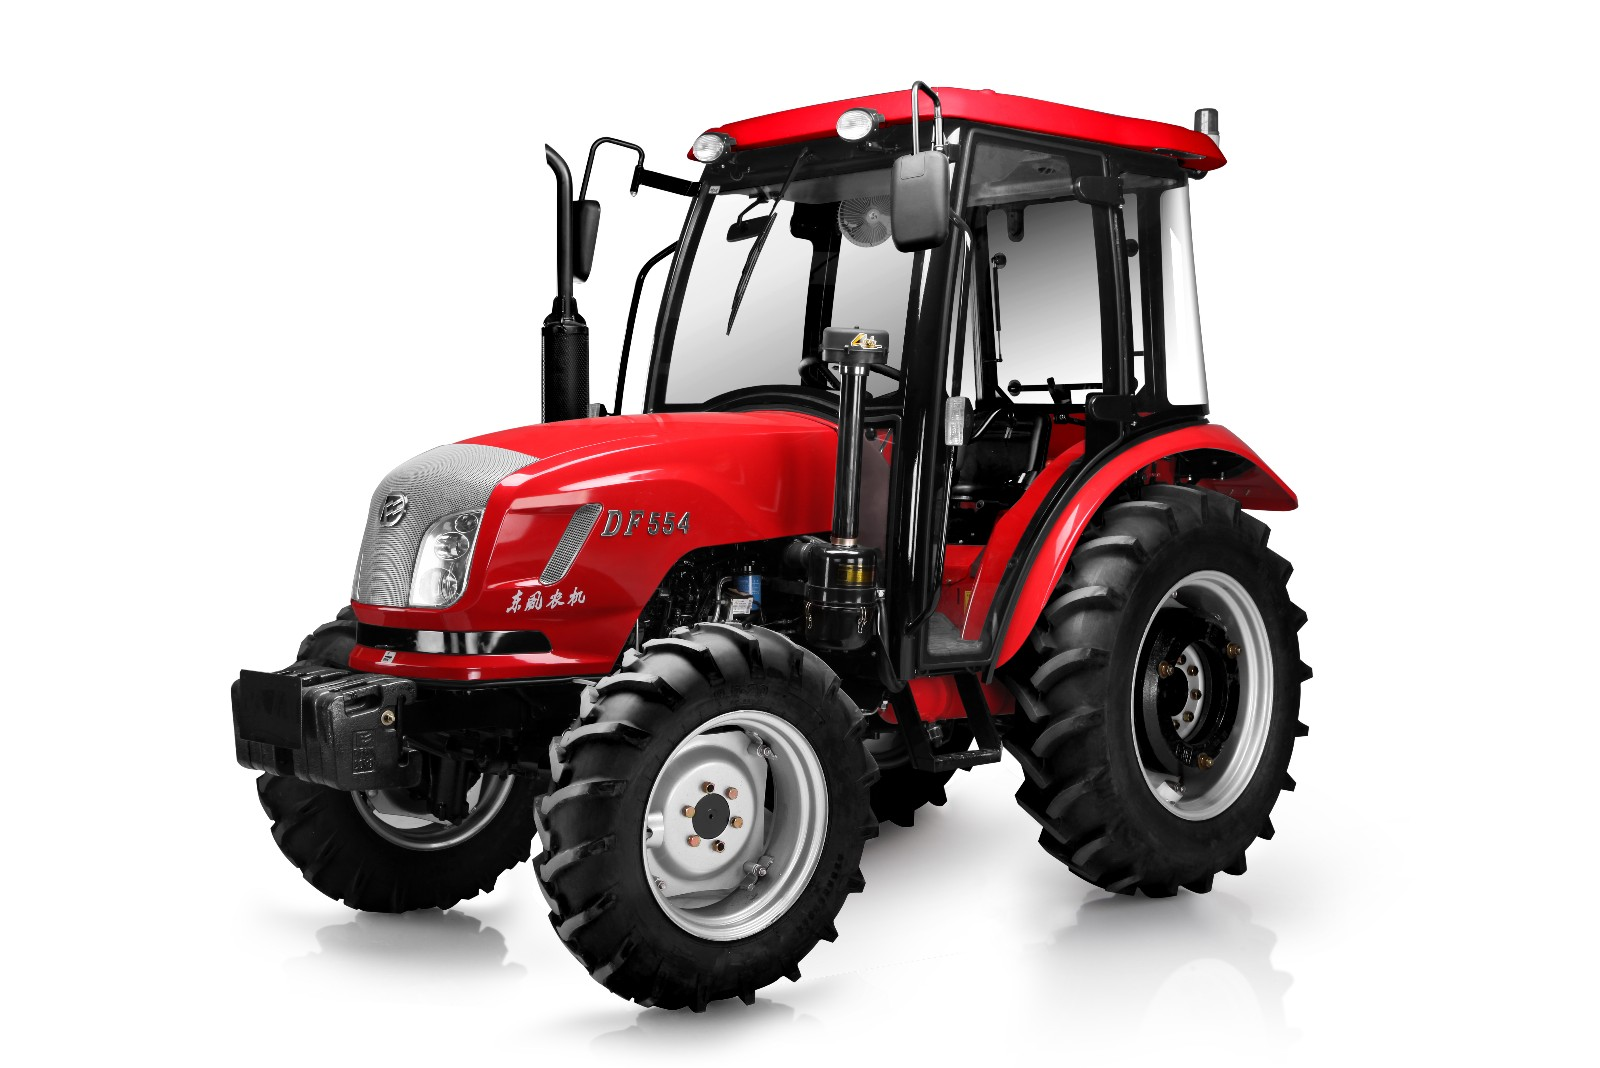 Changzhou Dongfeng Agricultural Machinery Group Co., Ltd.